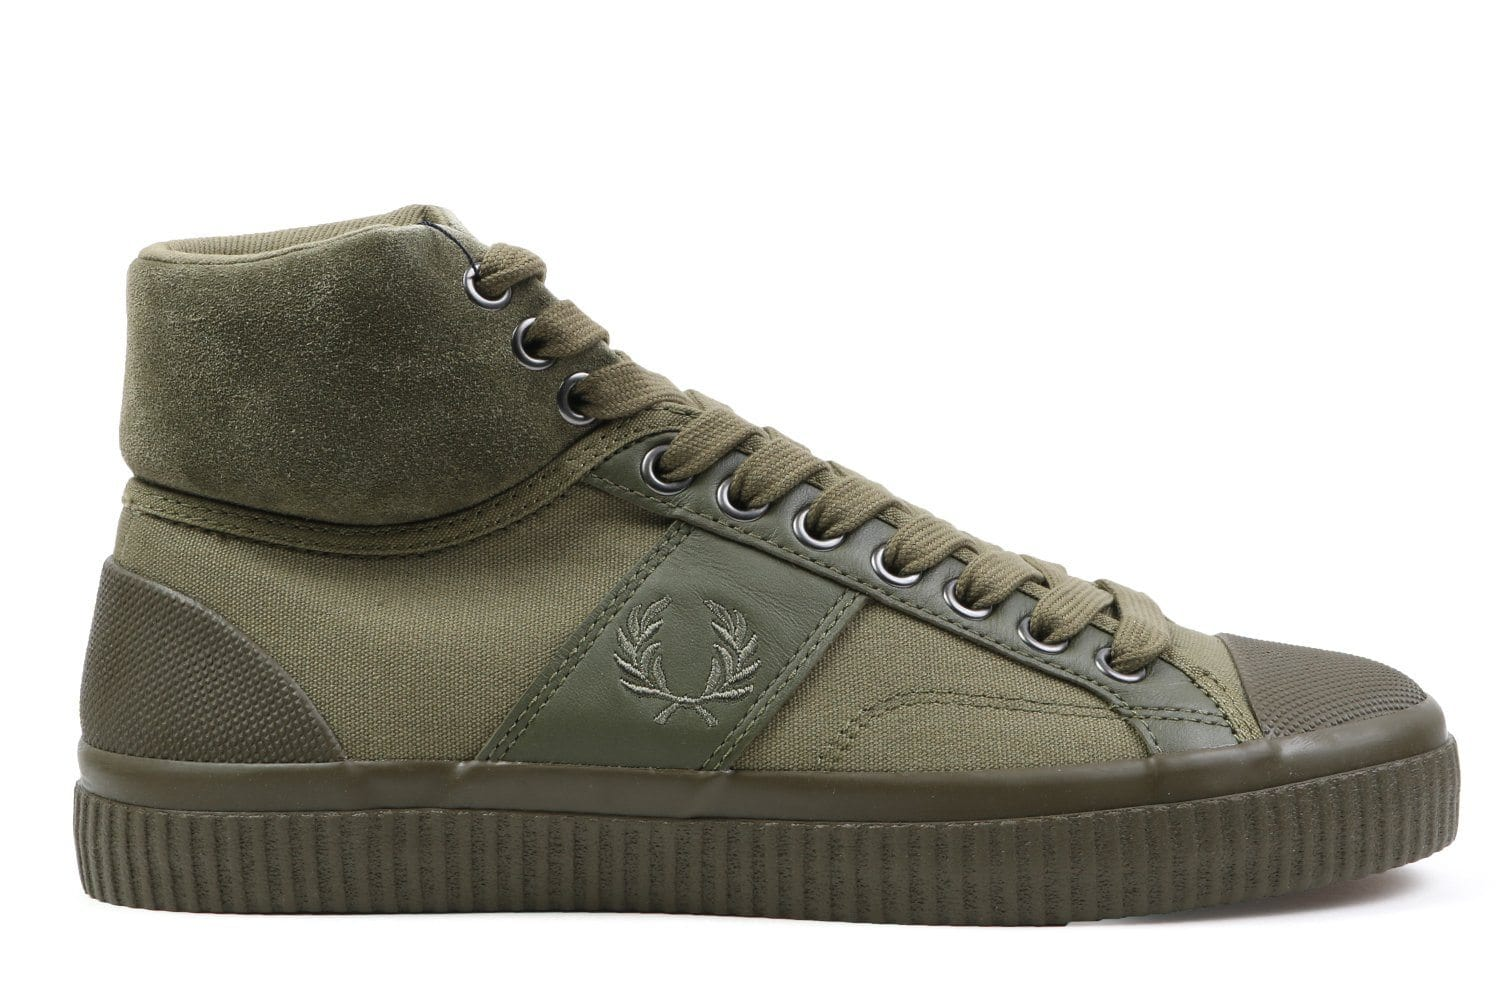 HUGHES MID WNTRSD WAXED CNVS - B 4301 MENS FOOTWEAR FRED PERRY